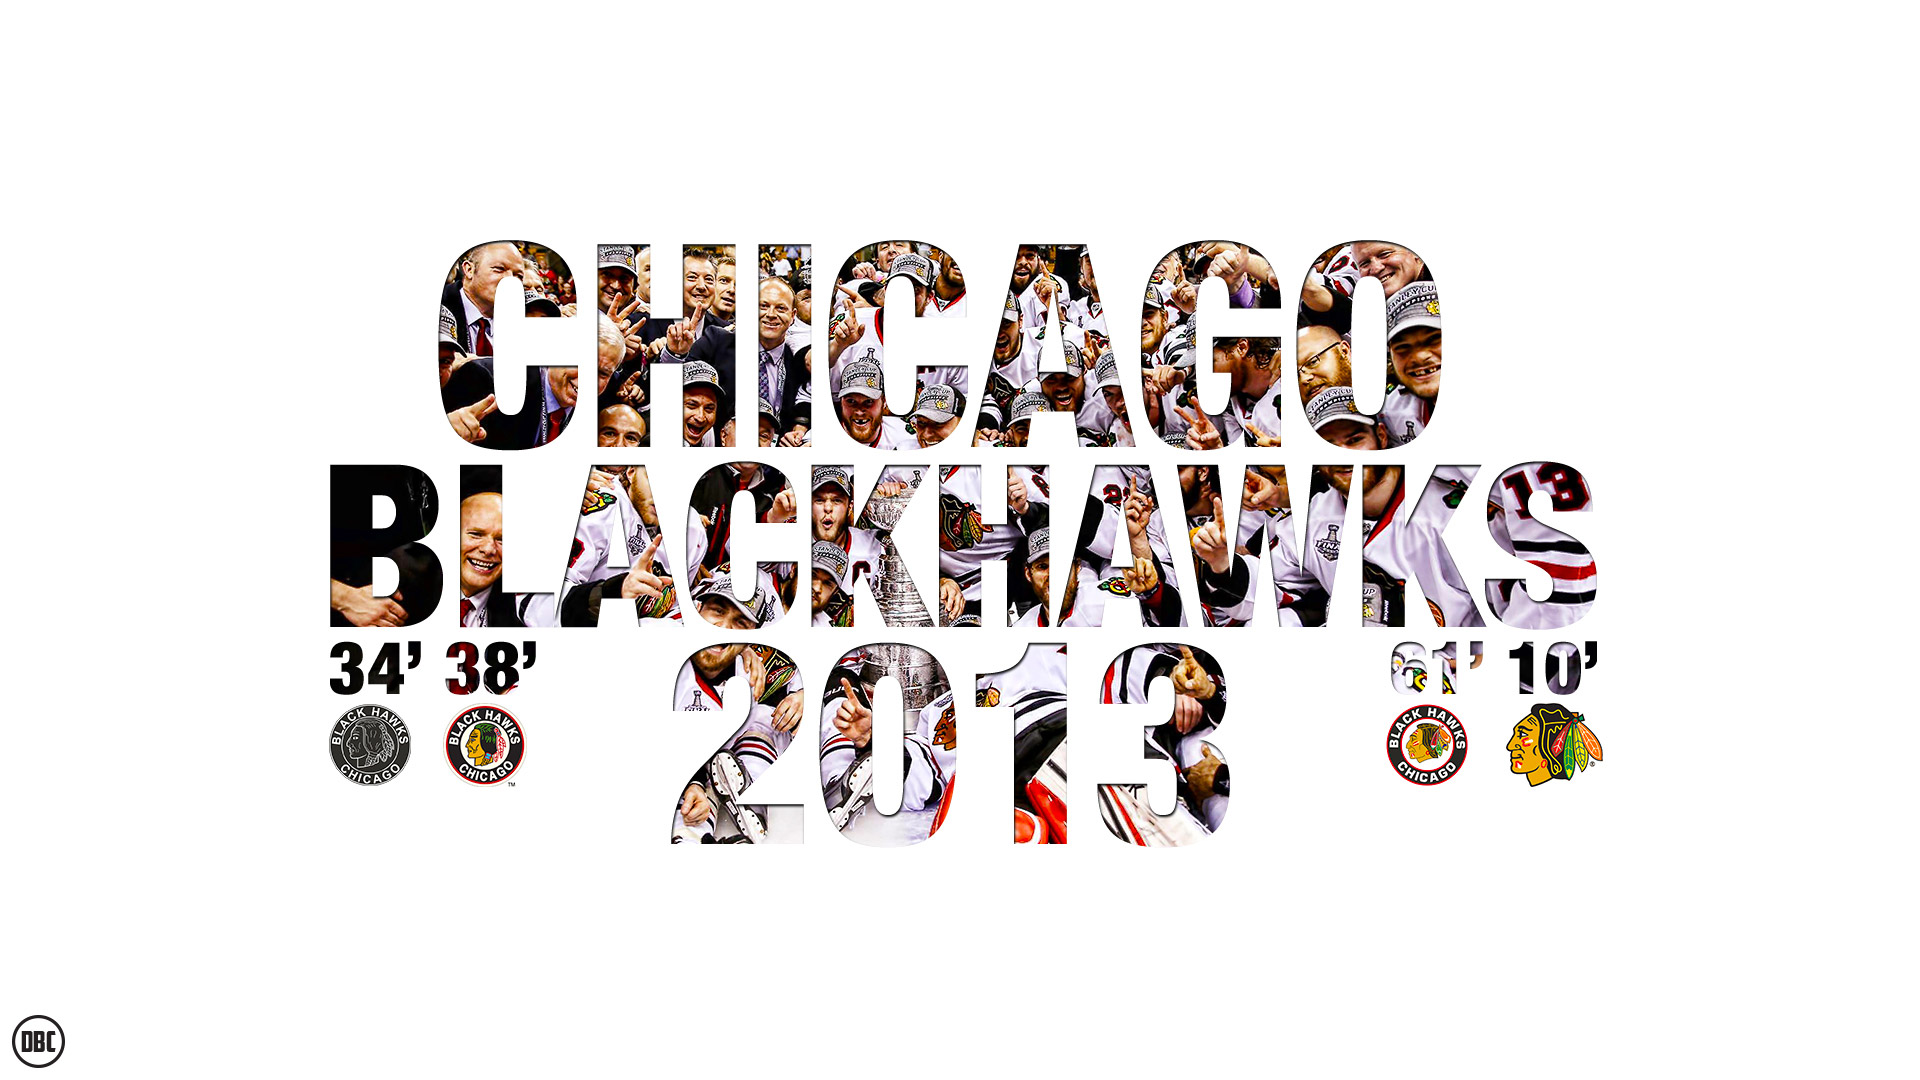 NHL Wallpapers   Chicago Blackhawks 2013 NHL Champions wallpaper 1920x1080